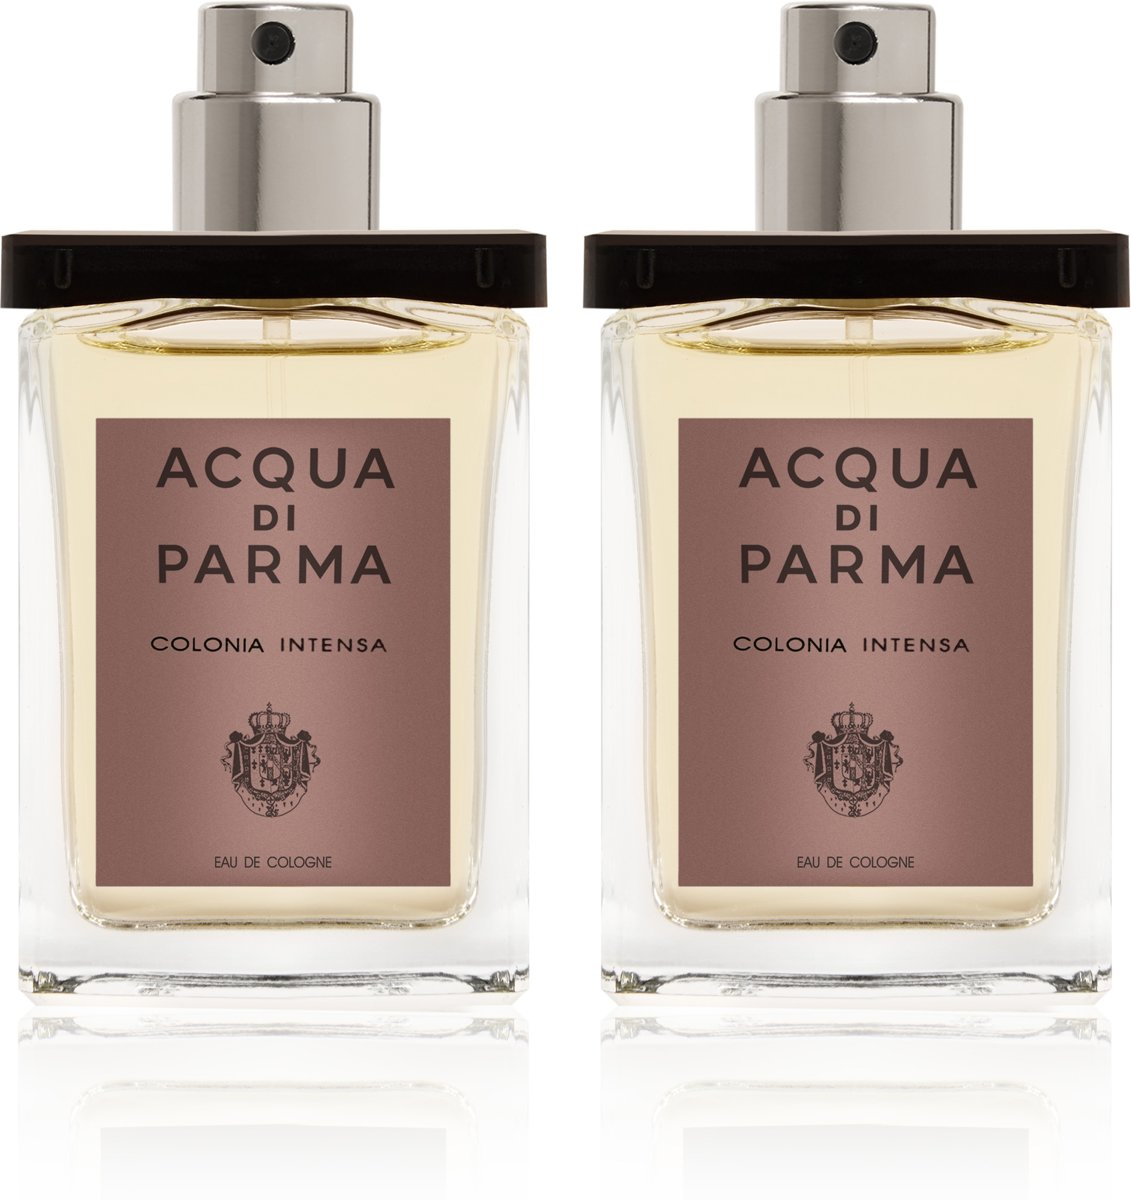 Acqua Di Parma Colonia Intensa Eau De Cologne Spray 2x30ml Refill